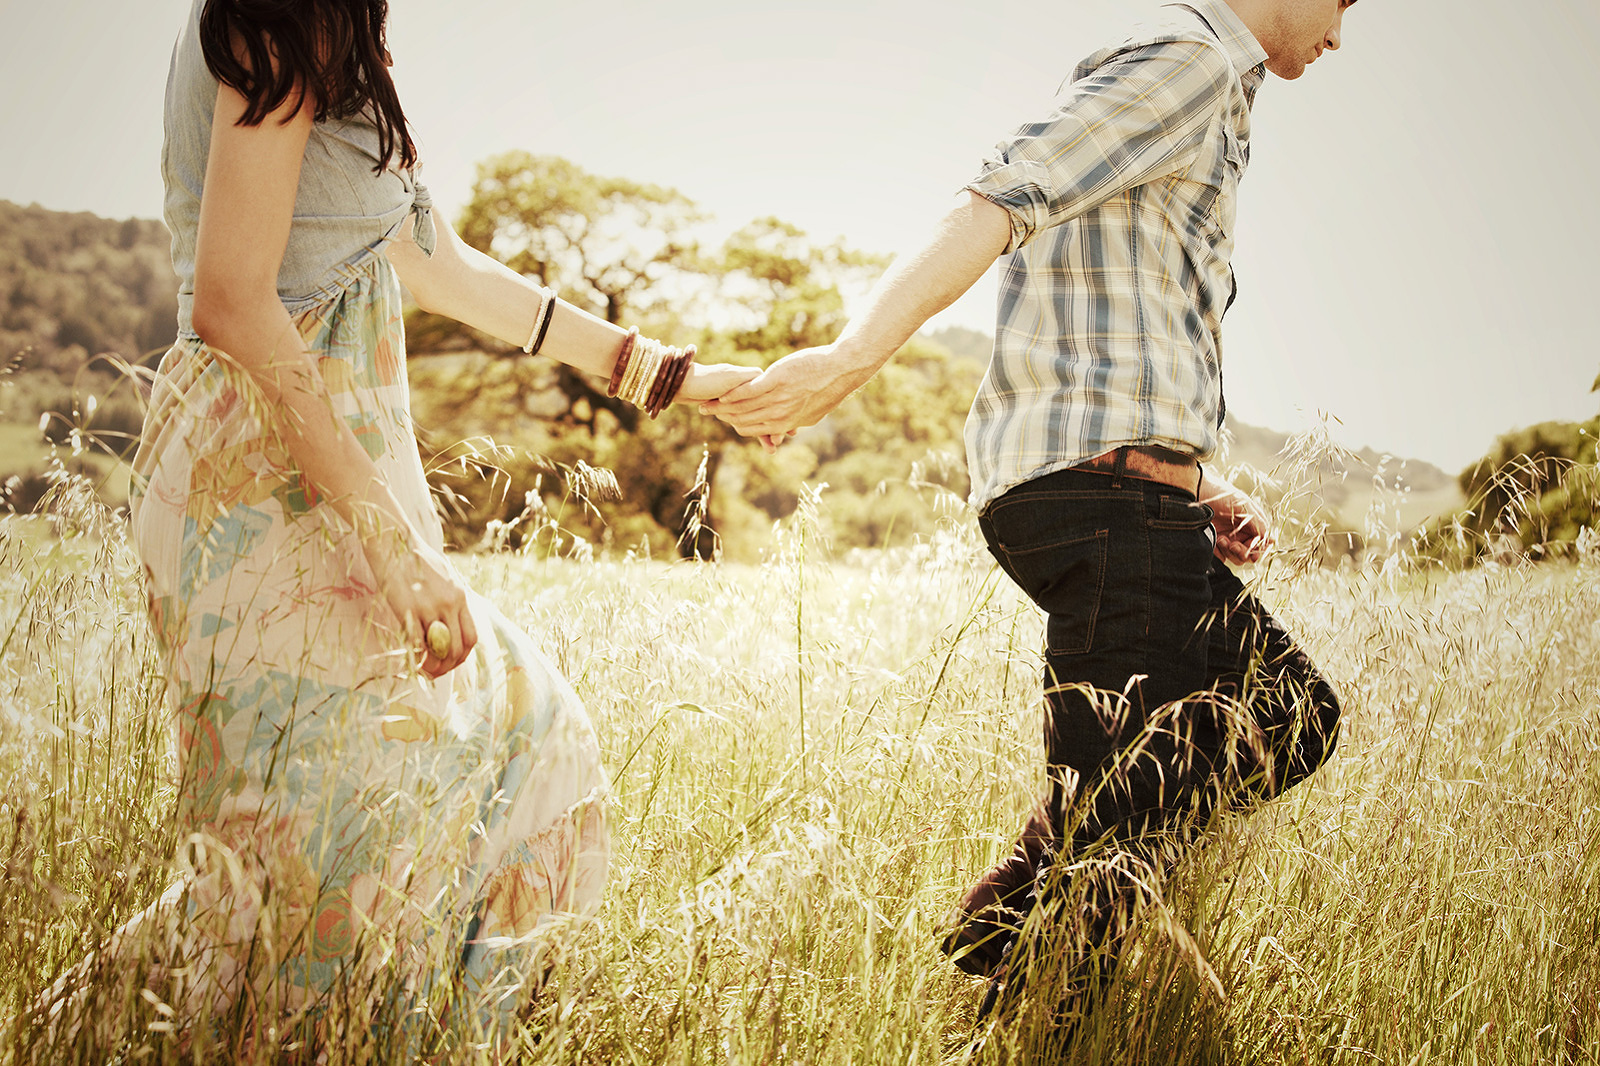 Couple in grassy field holding hands  | Dovis Bird Agency Photography